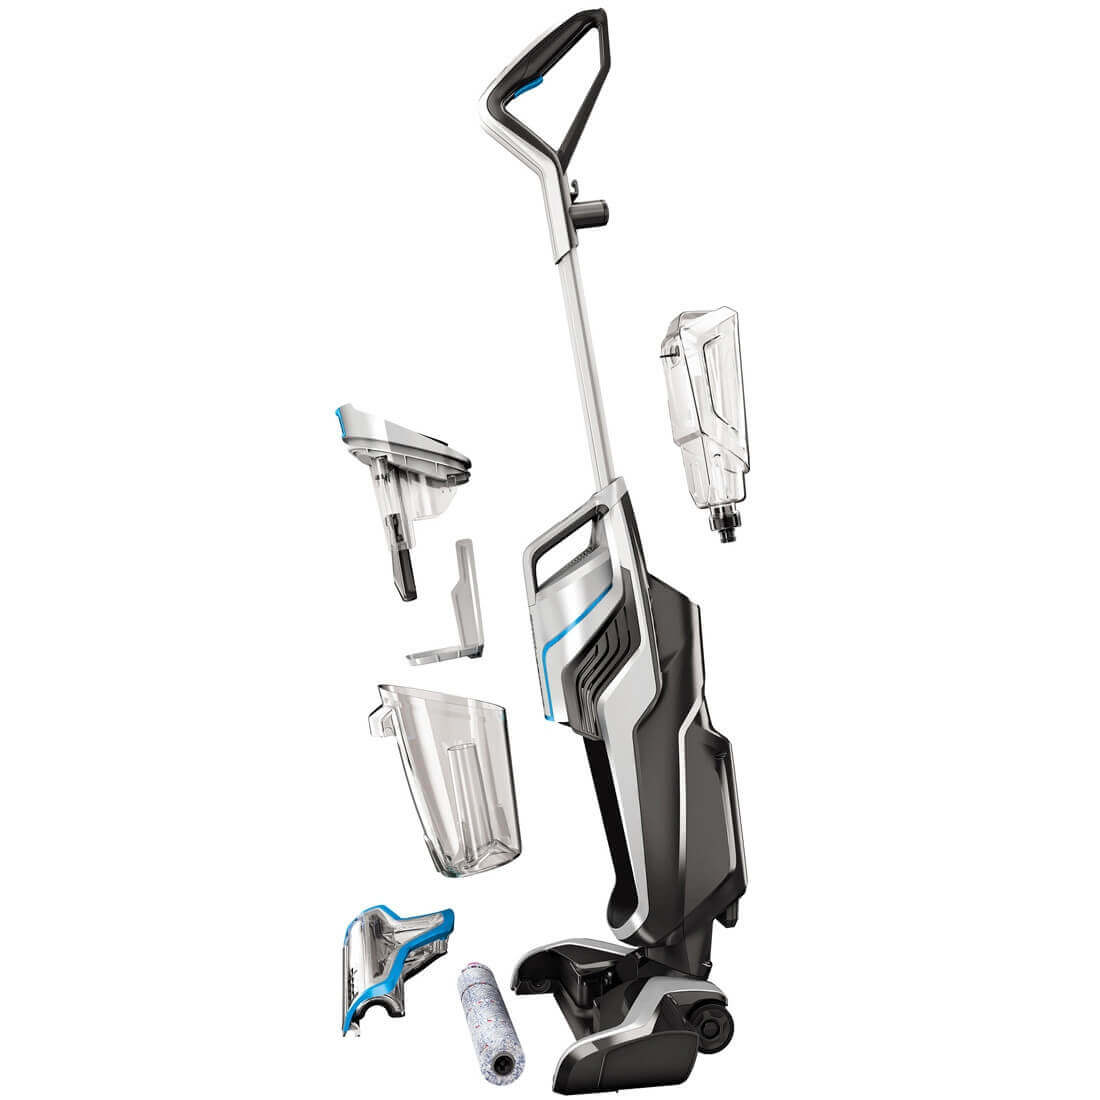 bissell crosswave cordless montage